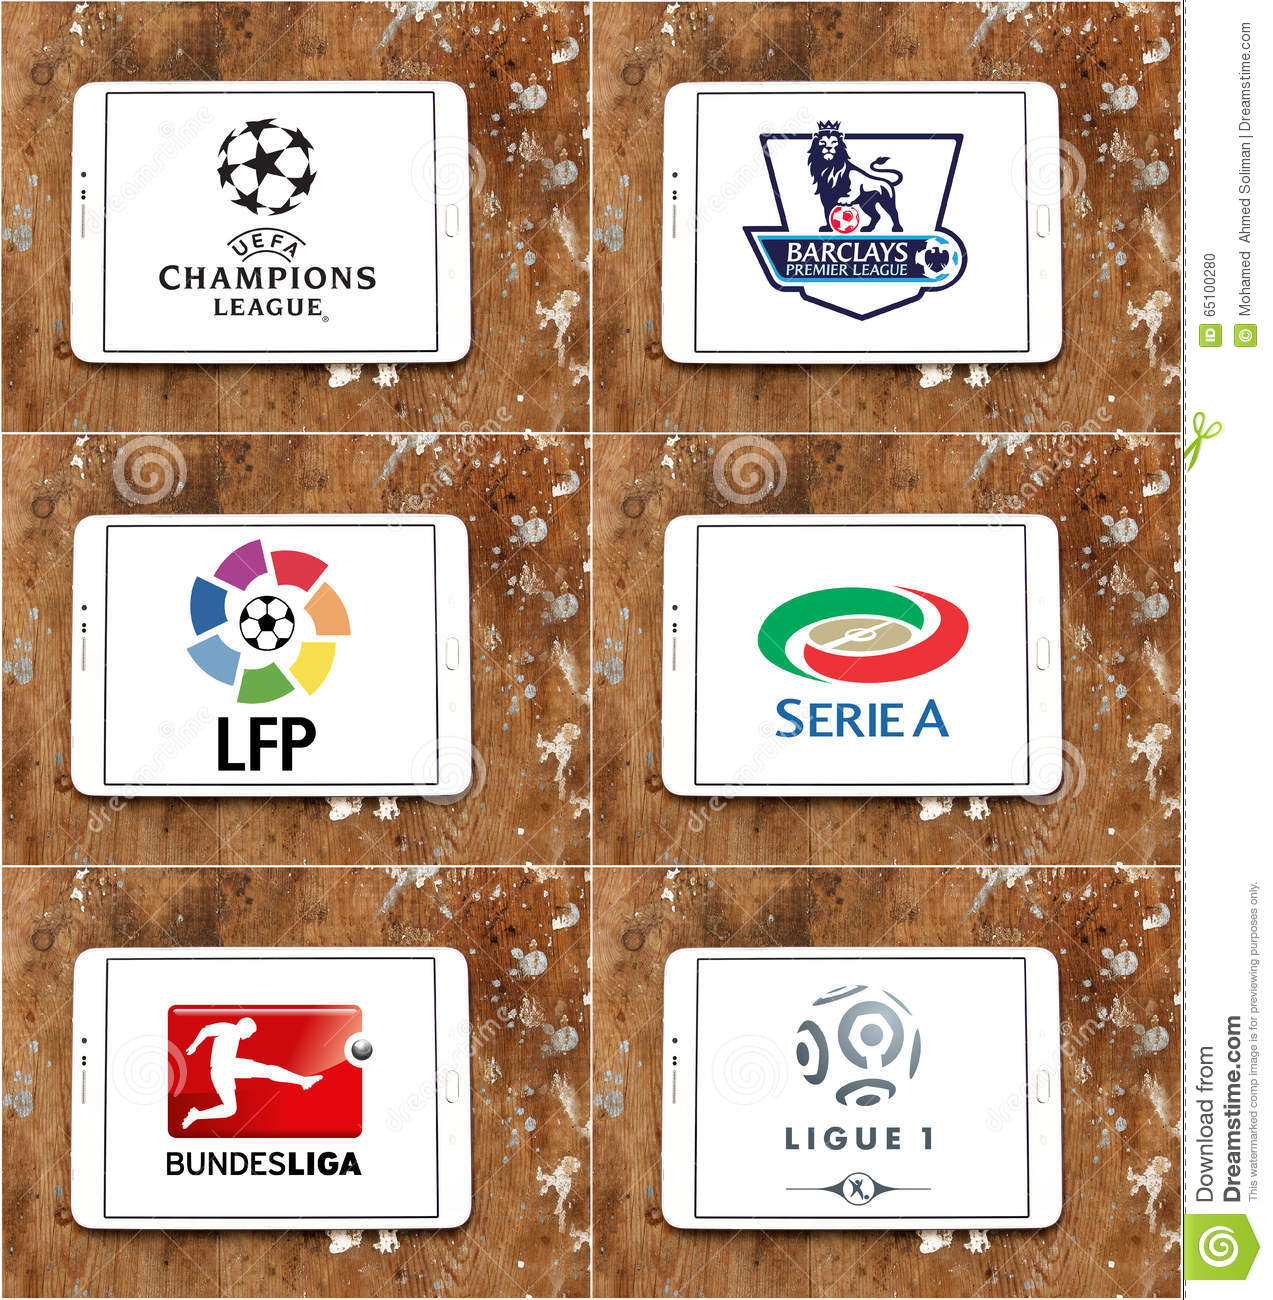 Top famous soccer or football league icons and brands in the world